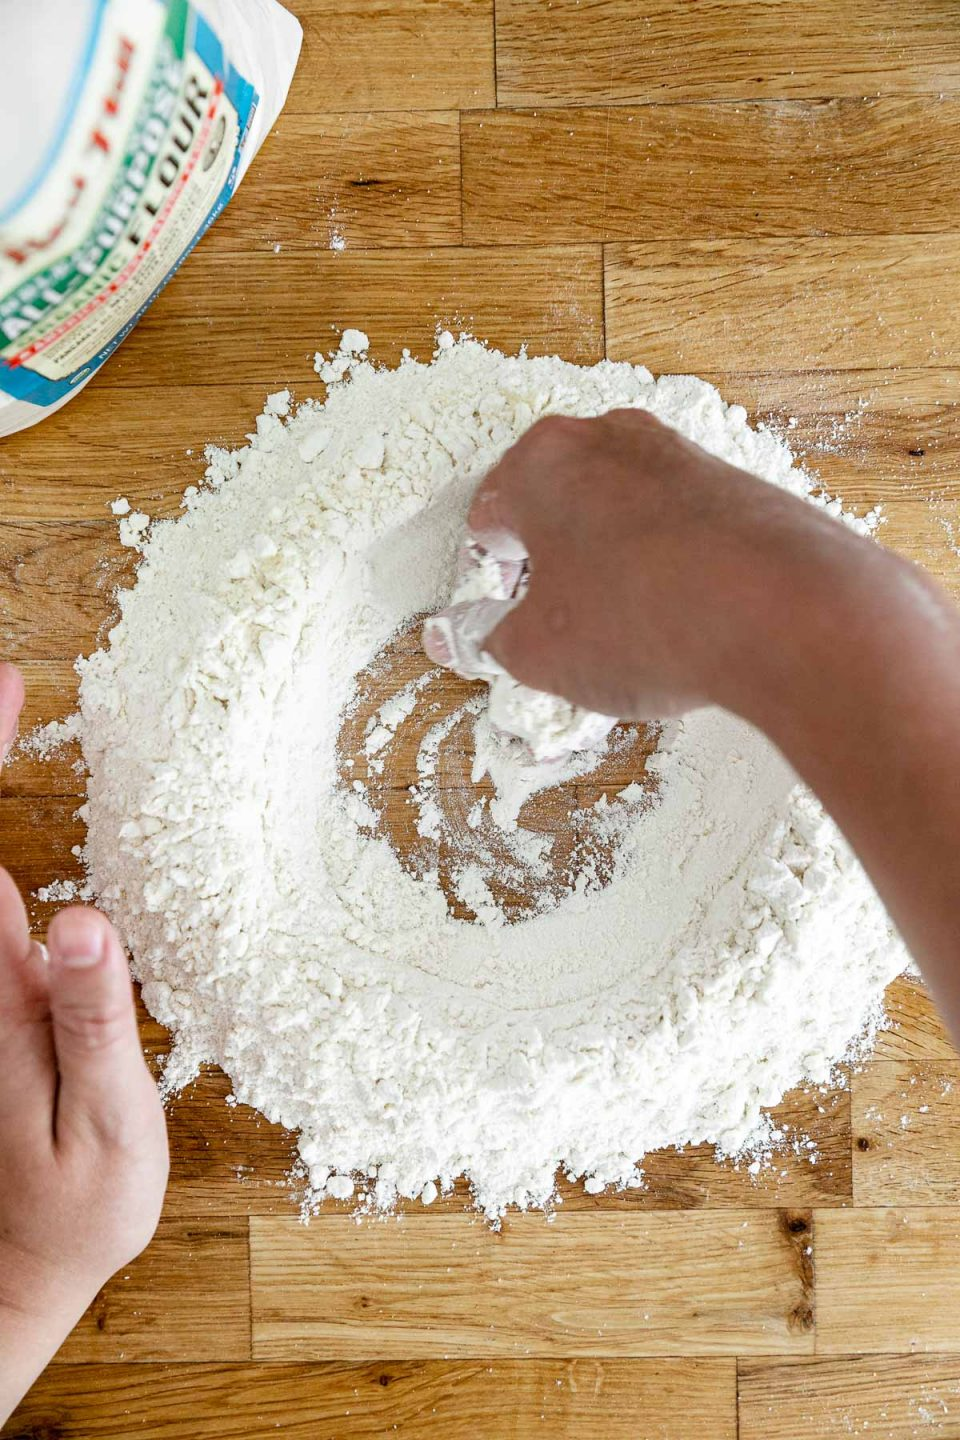 How to Make Homemade Pasta, Step 1: Mixing the flours. An overhead shot of Jess of Plays Well With Butter creating a large well in the center of a flour mixture with her hands. The well of flour sits atop a butcher block counter top and will be used to create fresh pasta dough.